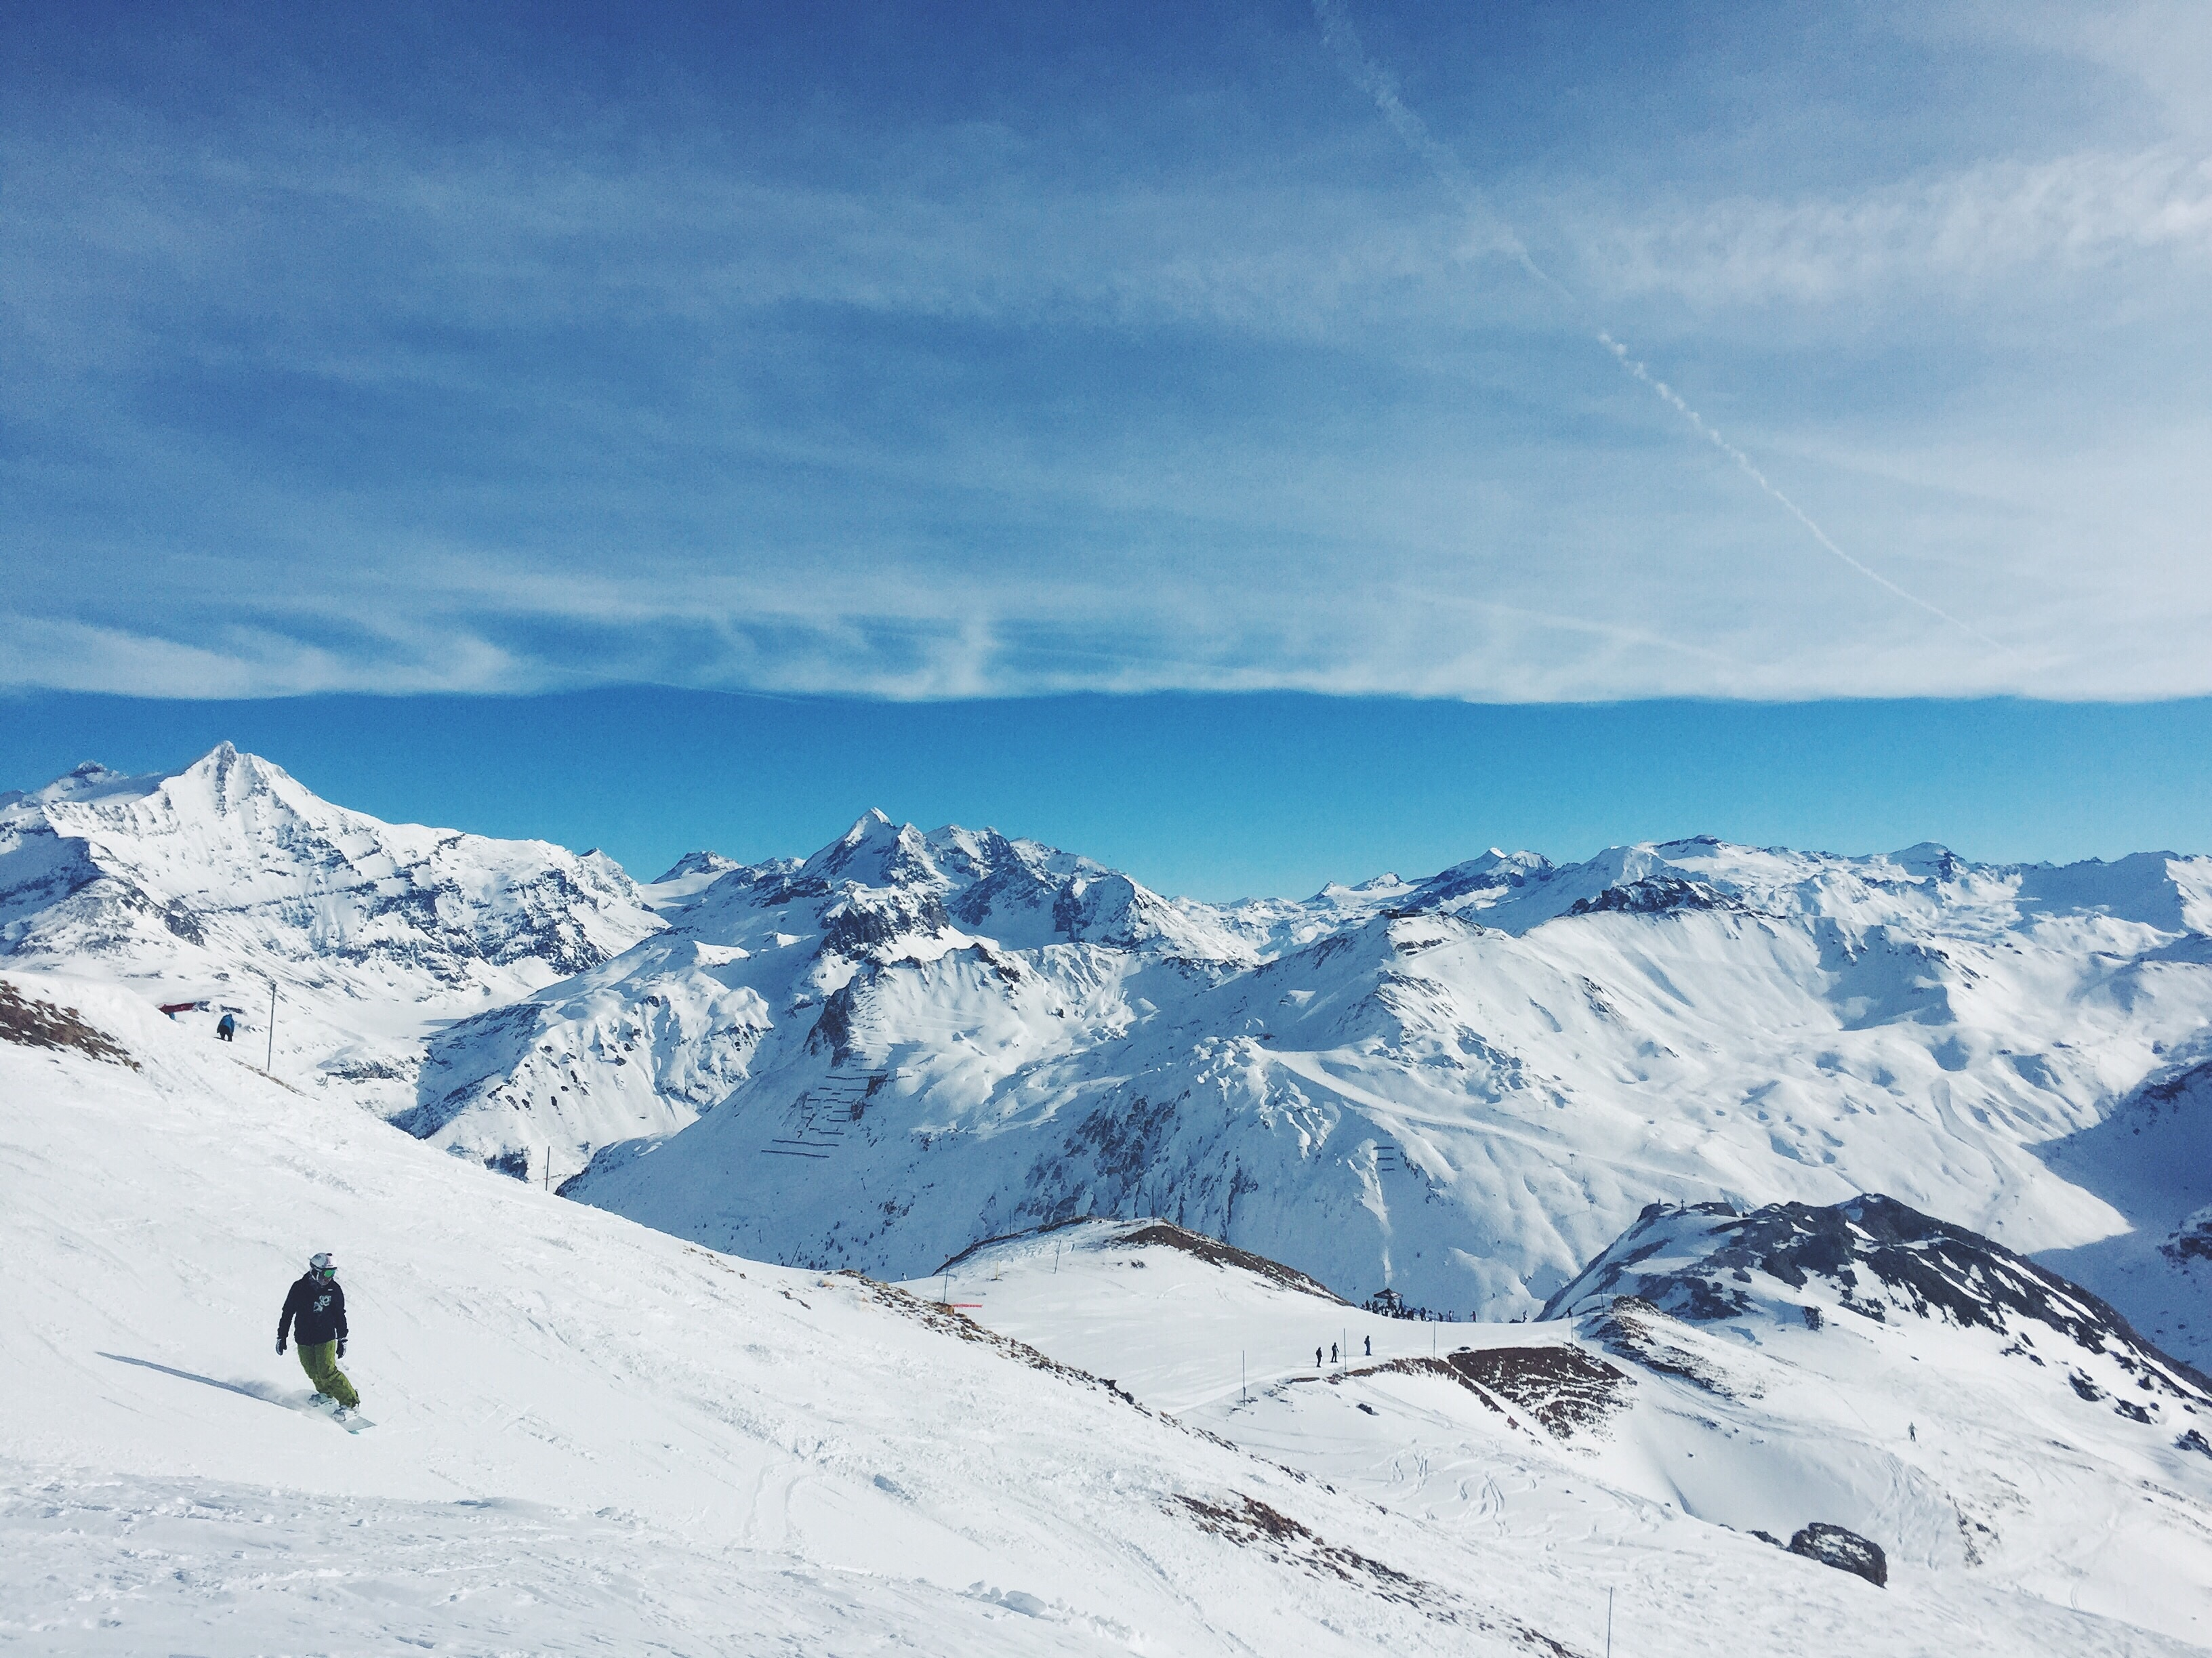 Skiing on the snow, Altitude, Cold, High, Ice, HQ Photo